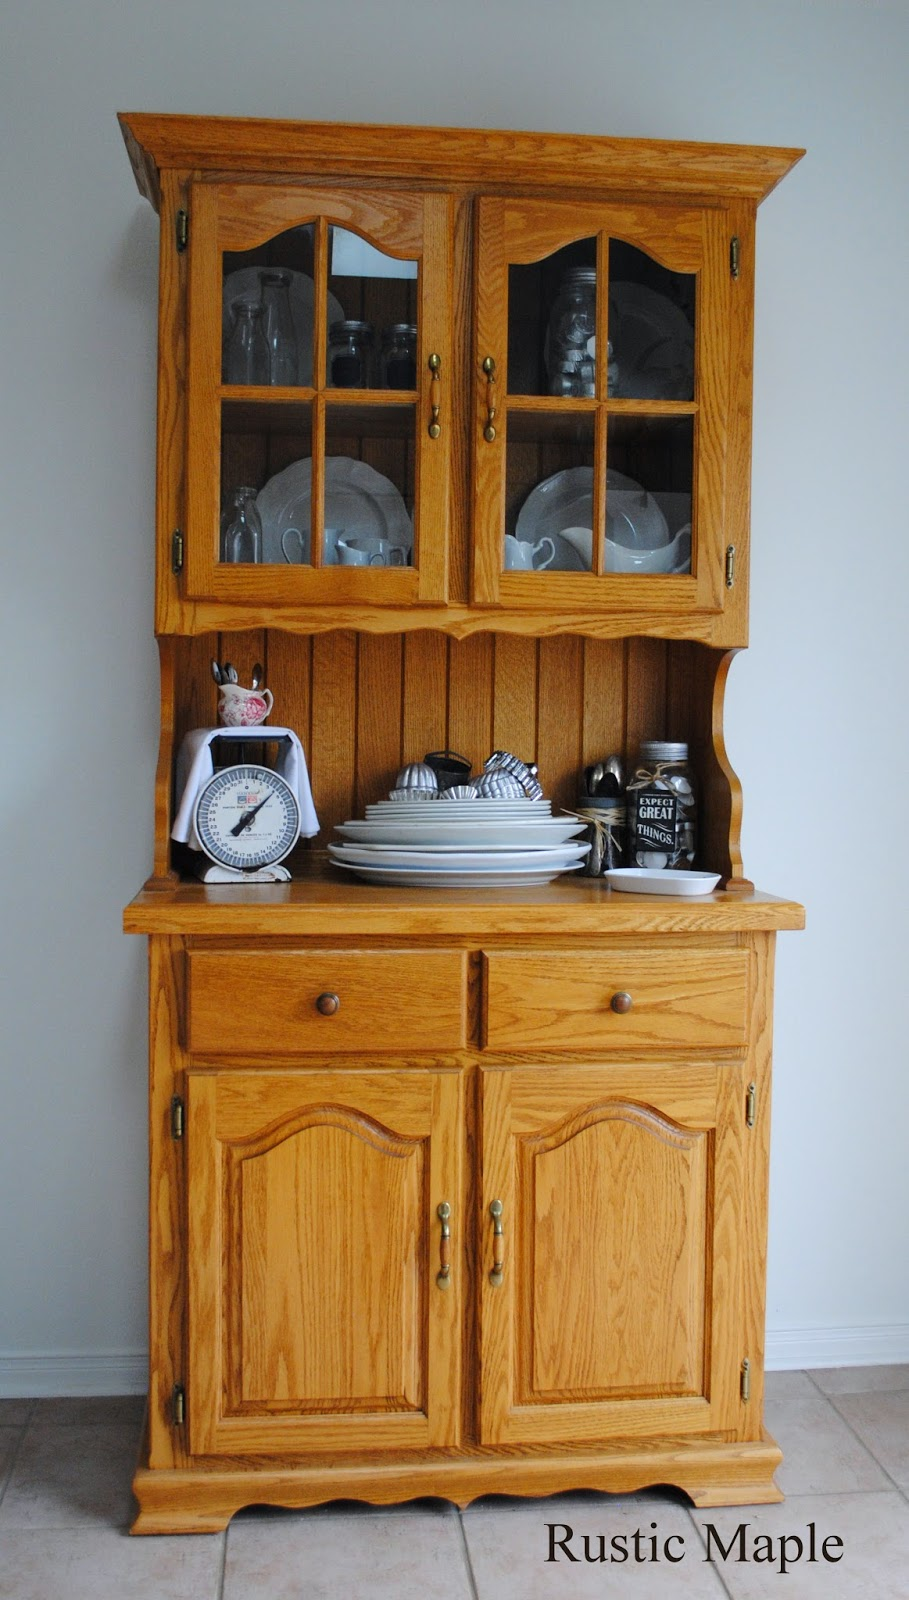 Rustic Maple: Oak Buffet and Hutch with Fusion Mineral Paint in ...